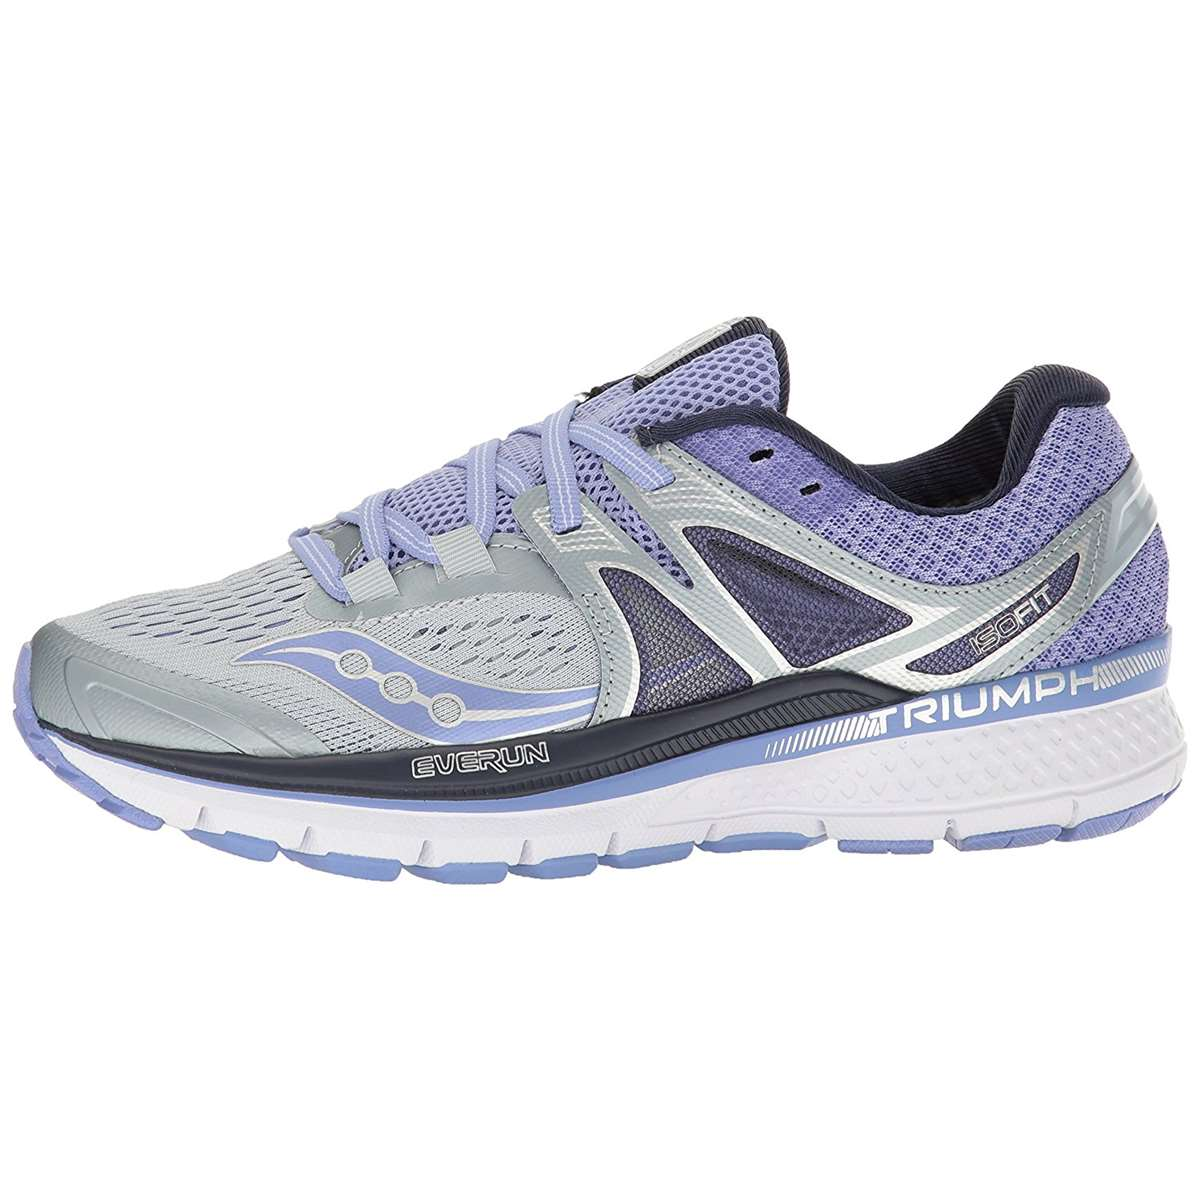 Saucony Women Triumph Iso 3 Running Shoes by Saucony